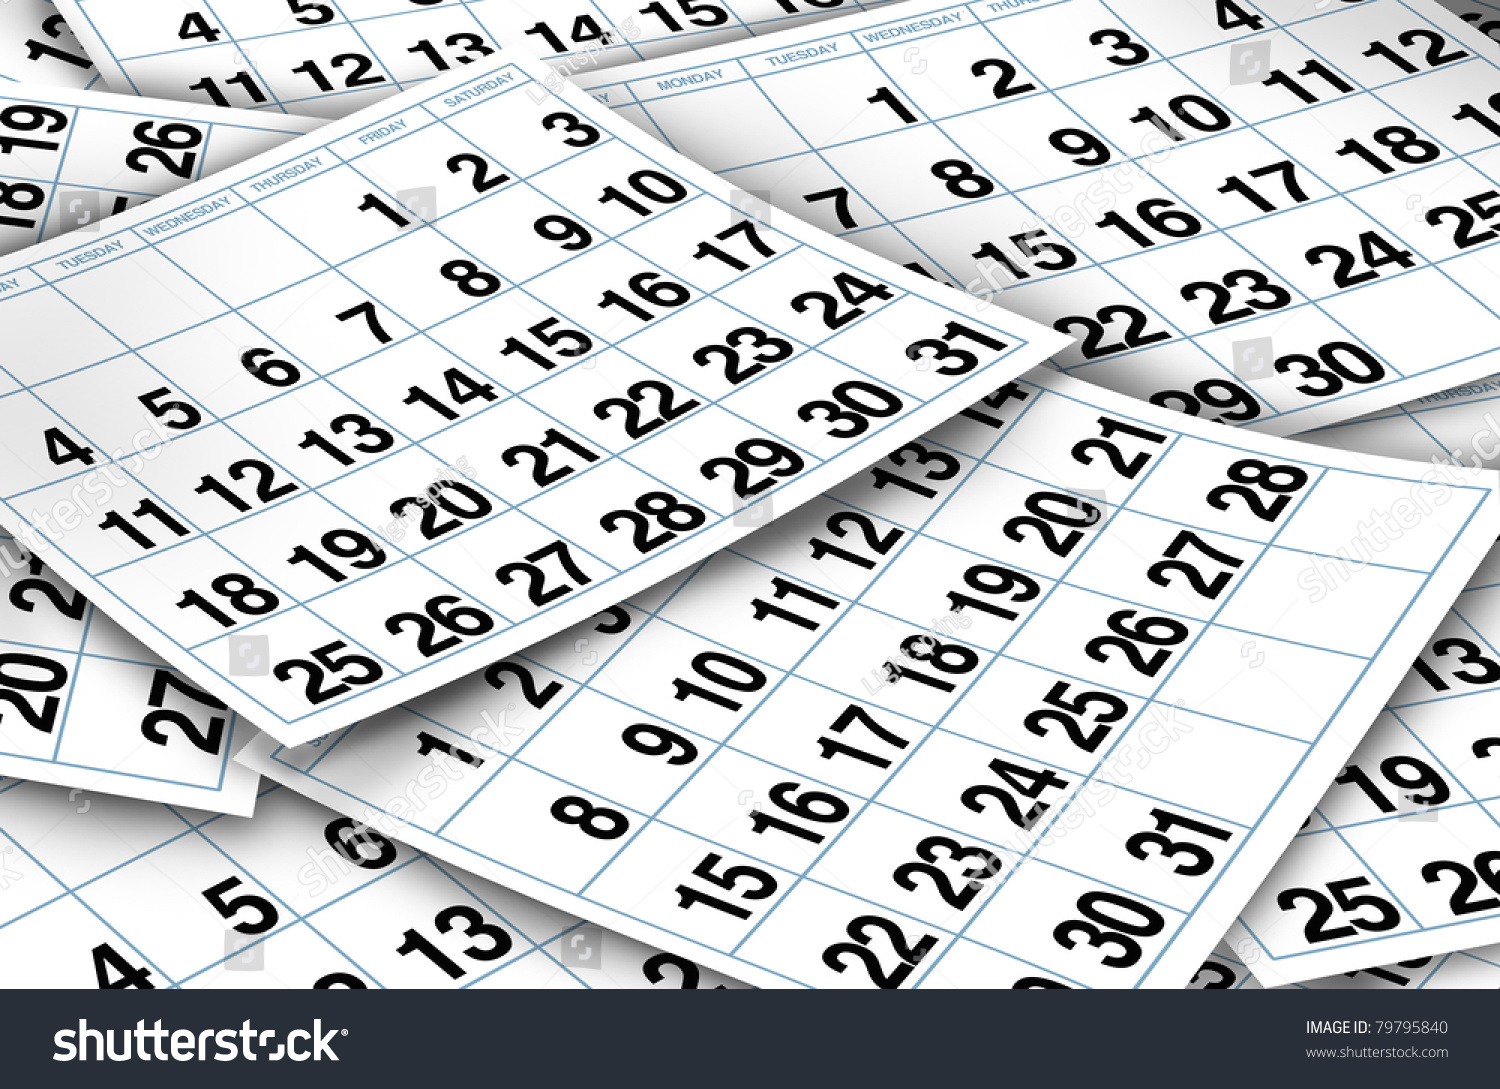 Calendar Pages Representing Time Important Dates Stock